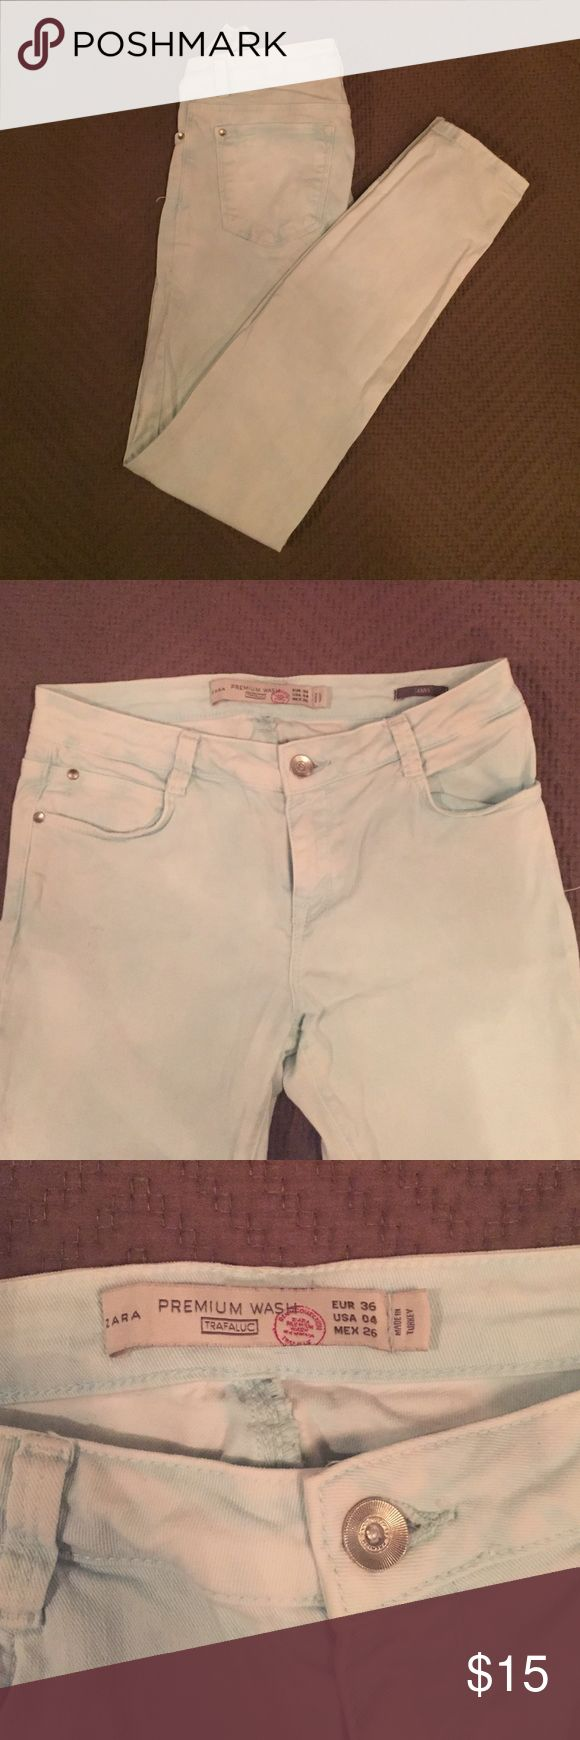 ZARA Light blue Skinny Jeans ZARA Light blue distressed Skinny Jeans. No flaws but has distressed markings on front and back. I am 5'8 and they hit me at the ankle. Zara Jeans Skinny